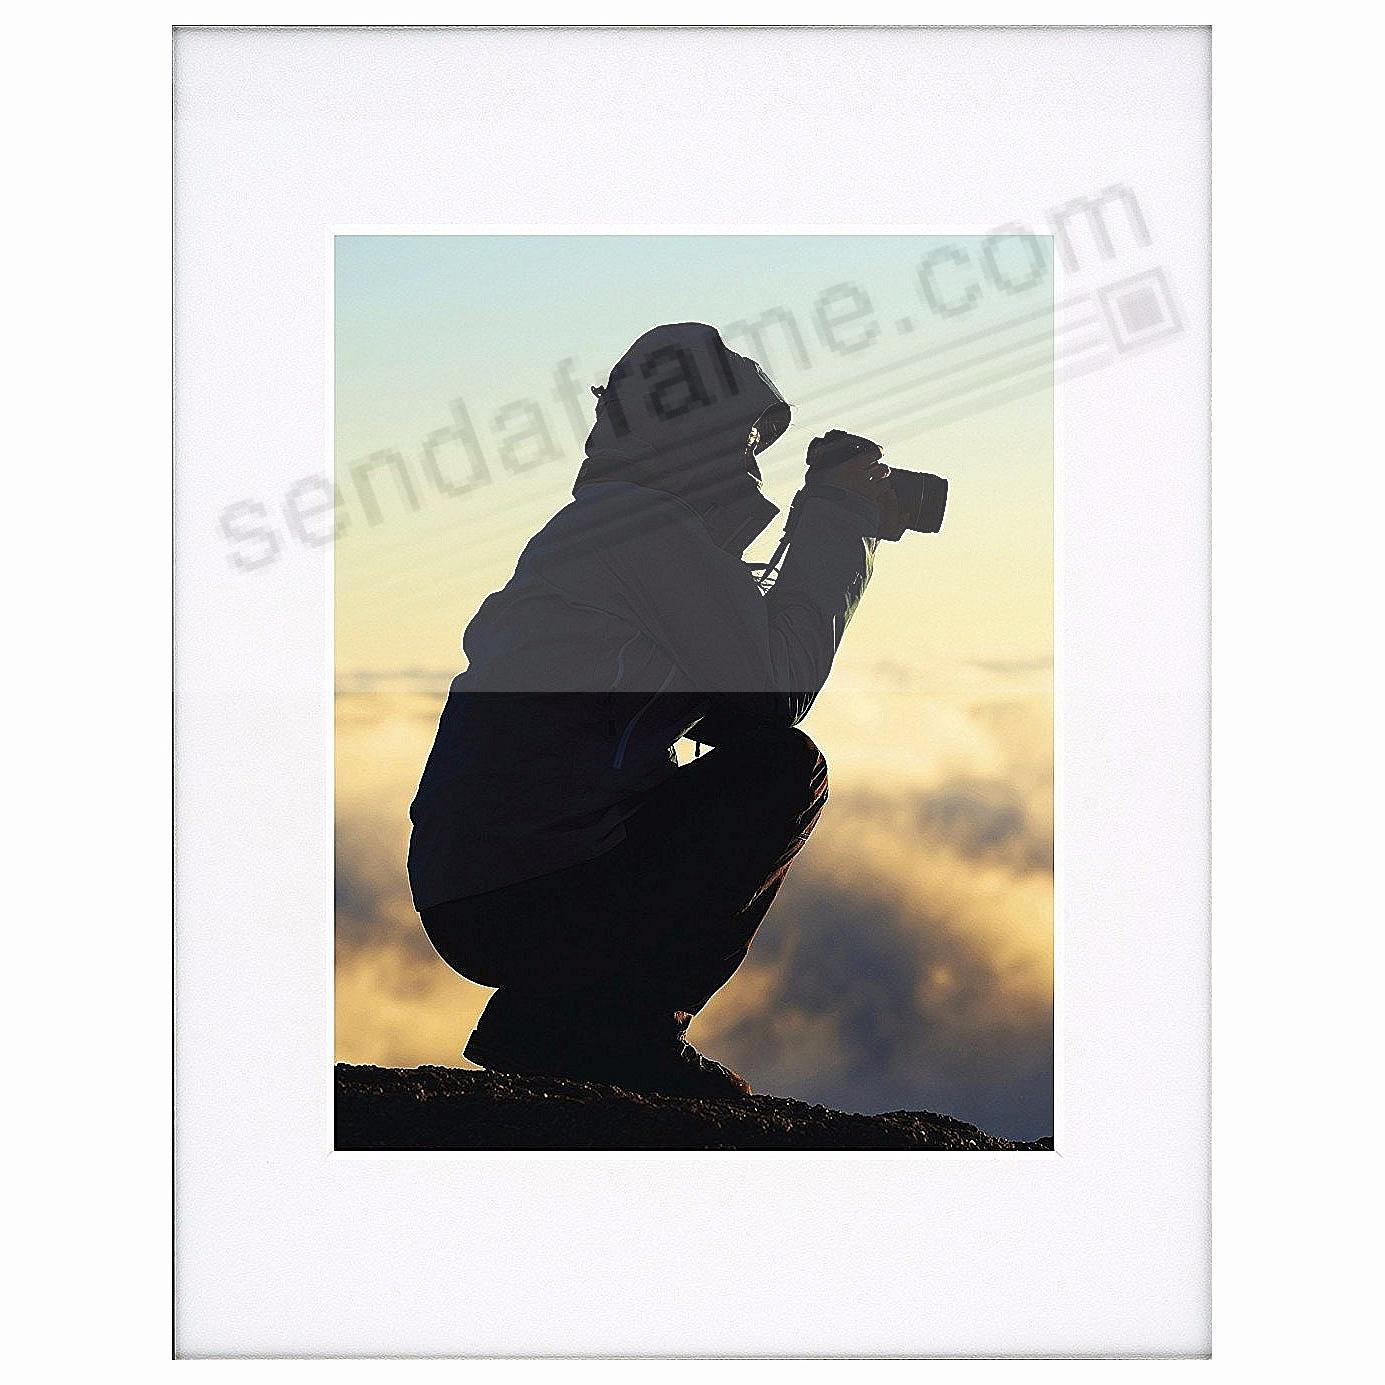 PHOTOGRAPHY Metallic frame WHITE/White Matted 16x20/11x14 by ARTCARE®